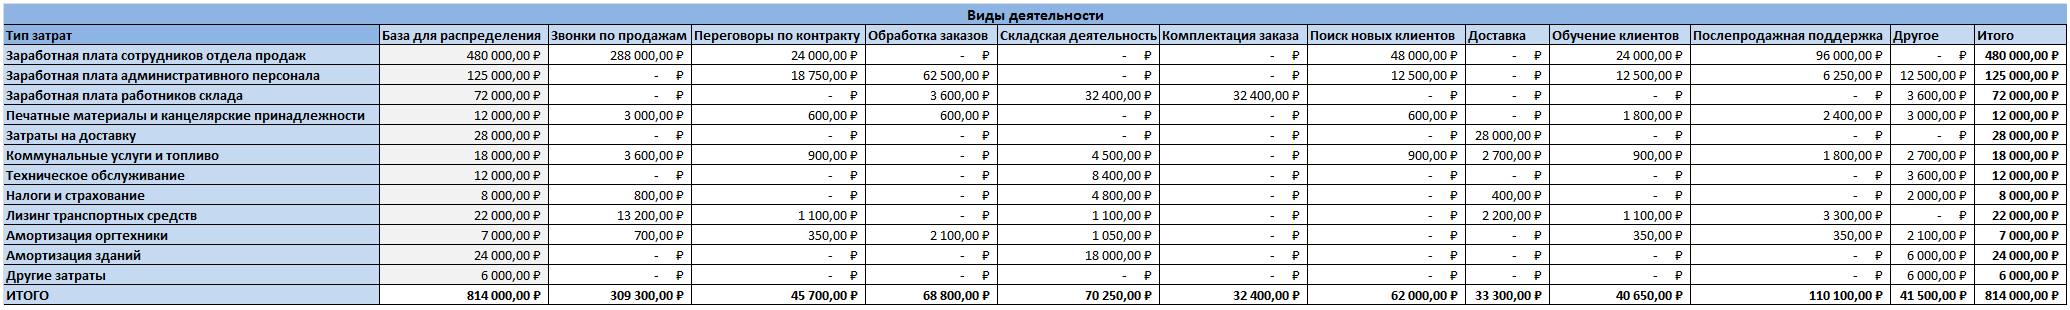 Расчет Activity-based costing (пример)